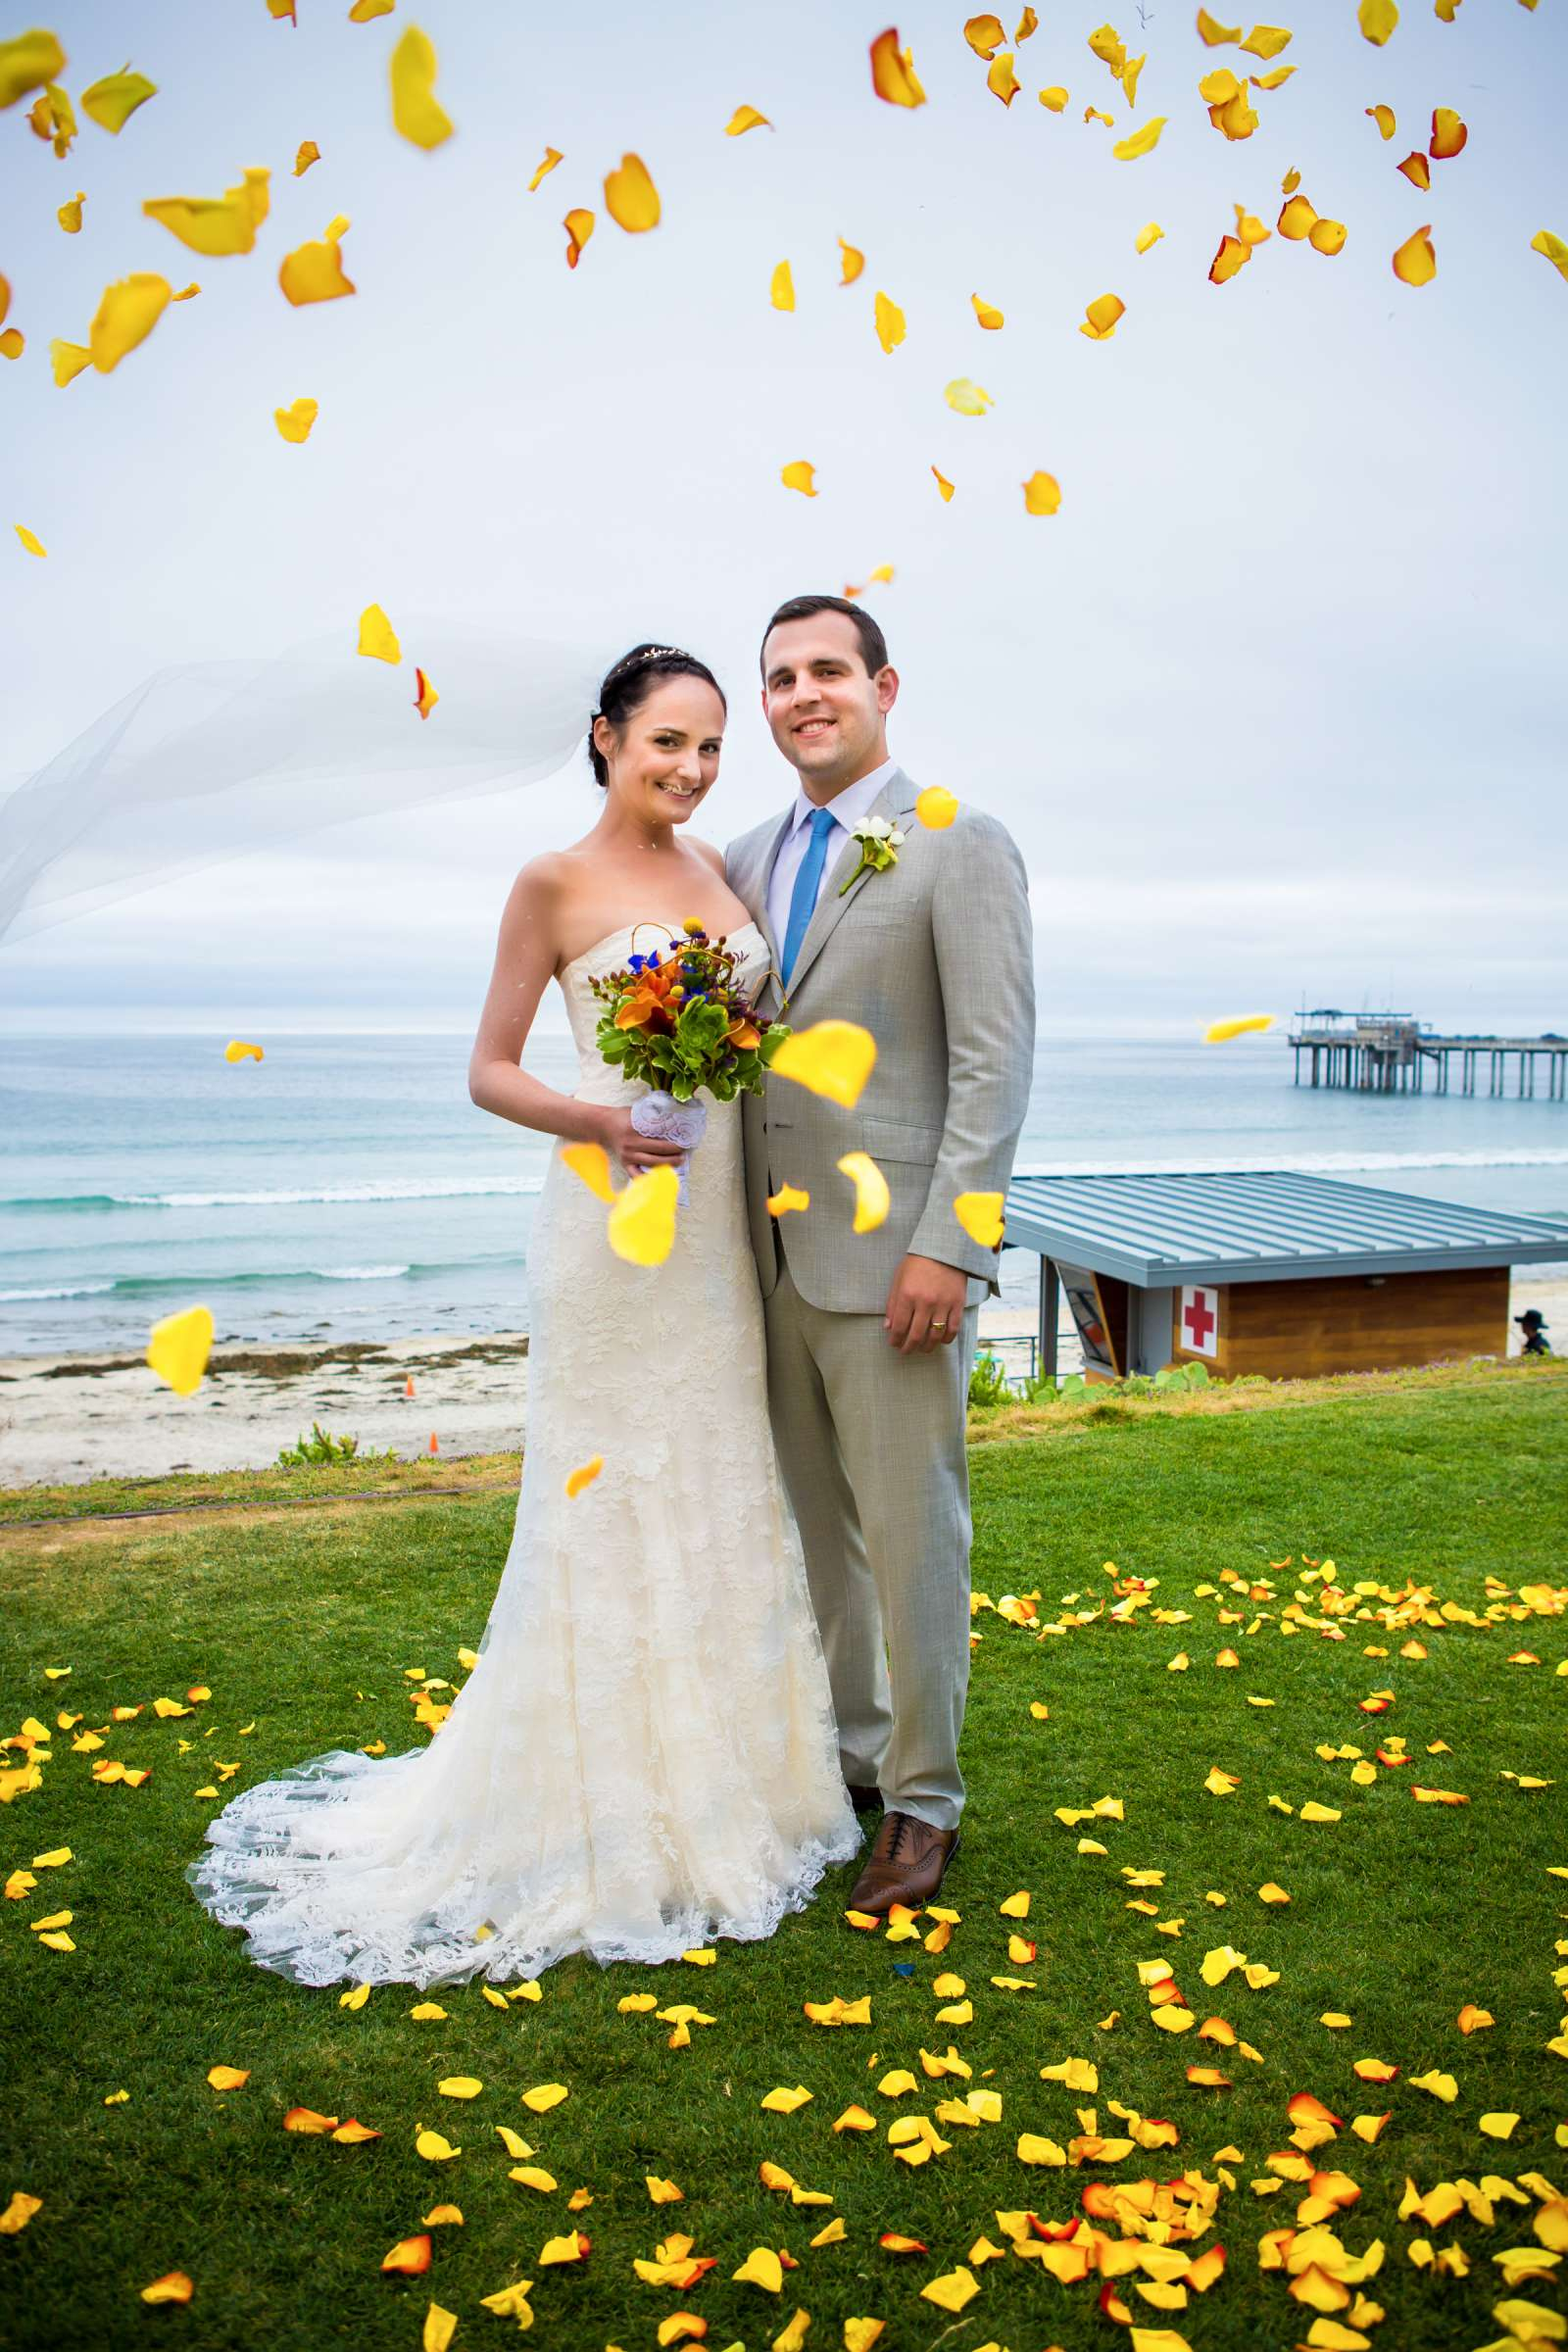 Scripps Seaside Forum Wedding coordinated by Francine Ribeau Events, Shaina and Christopher Wedding Photo #10 by True Photography